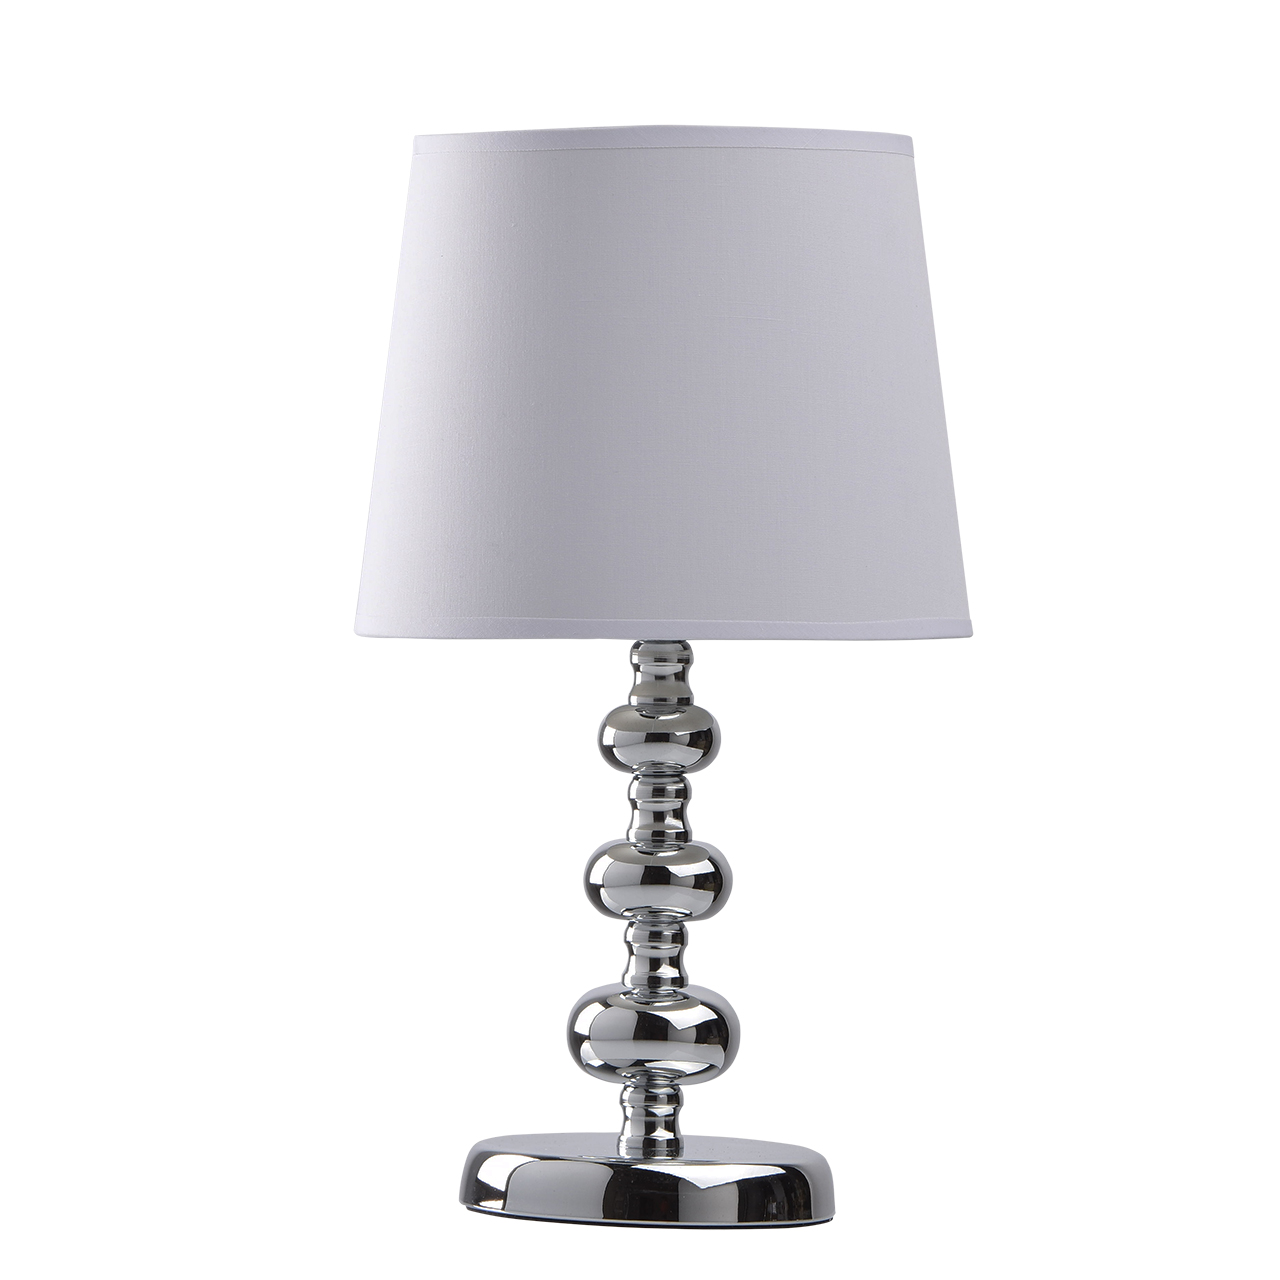 Lampe de bureau Table lamps